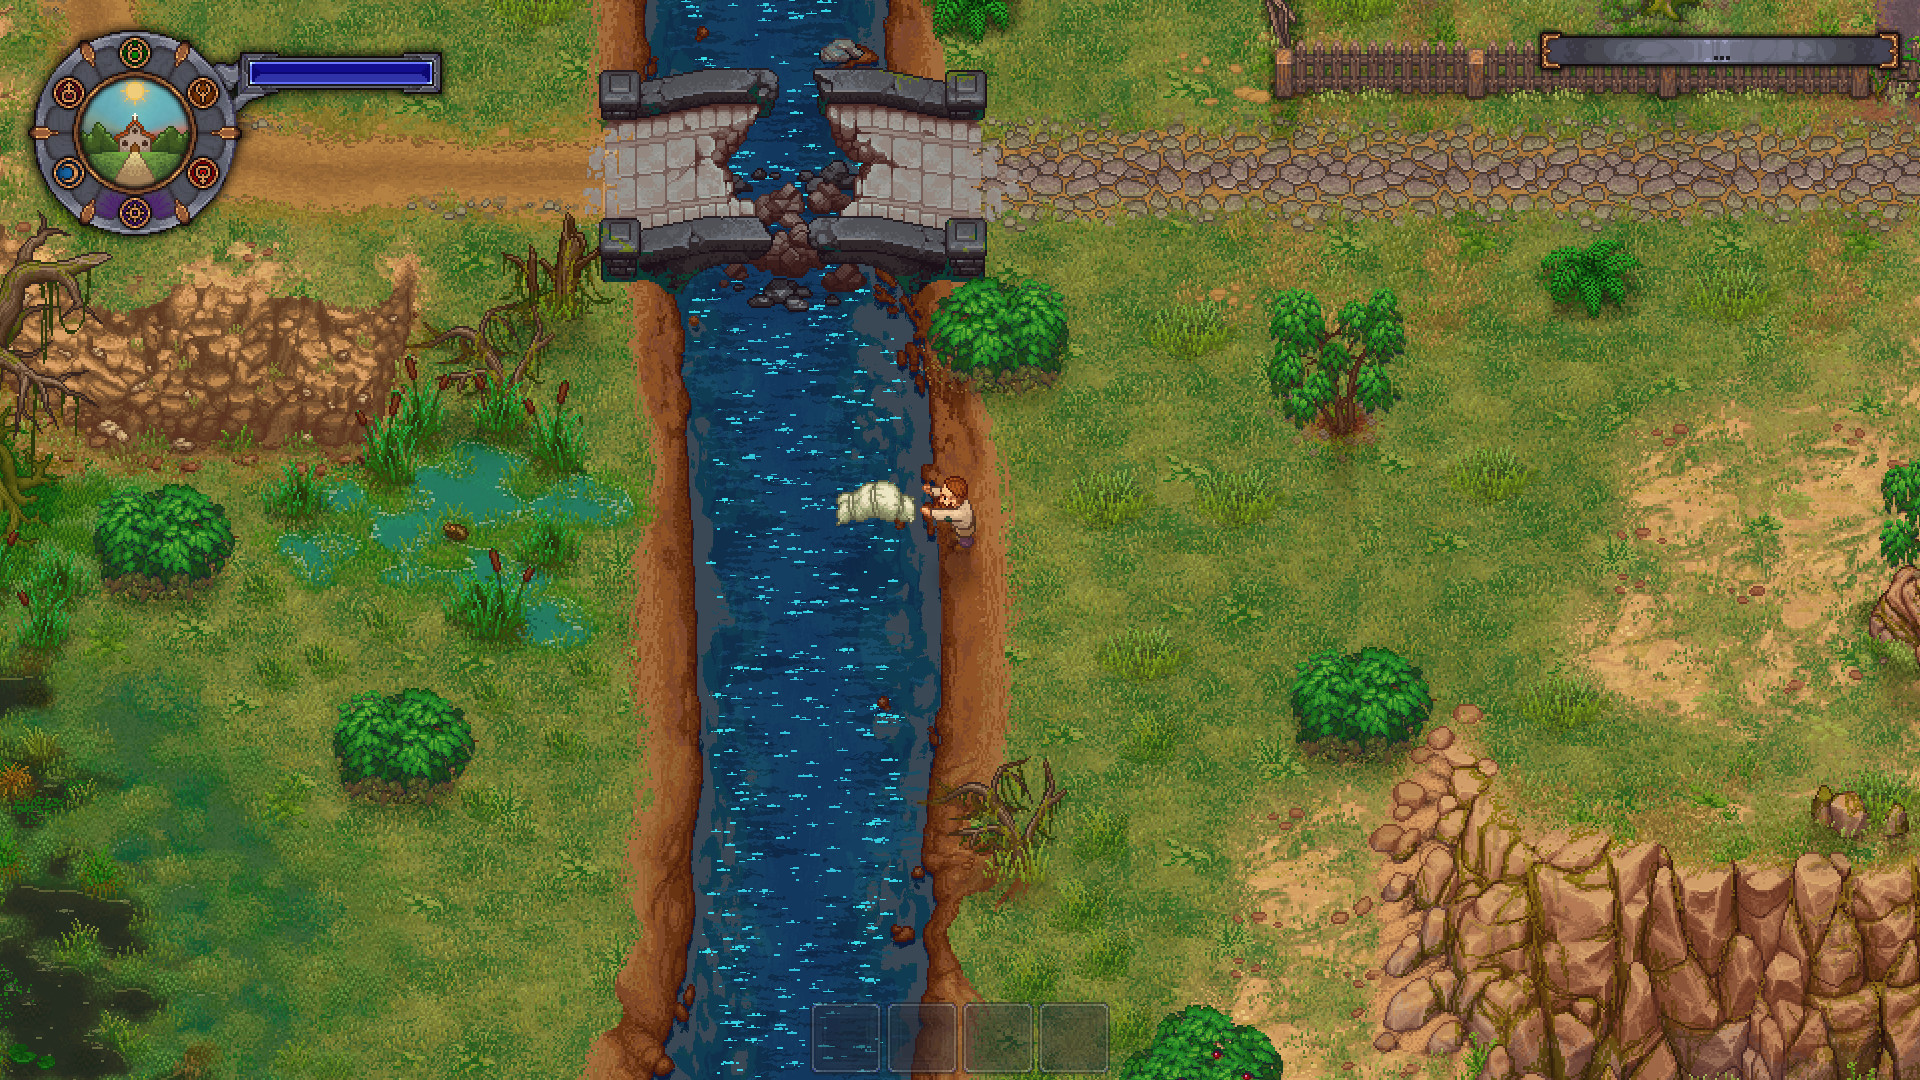 Find the best laptop for Graveyard Keeper